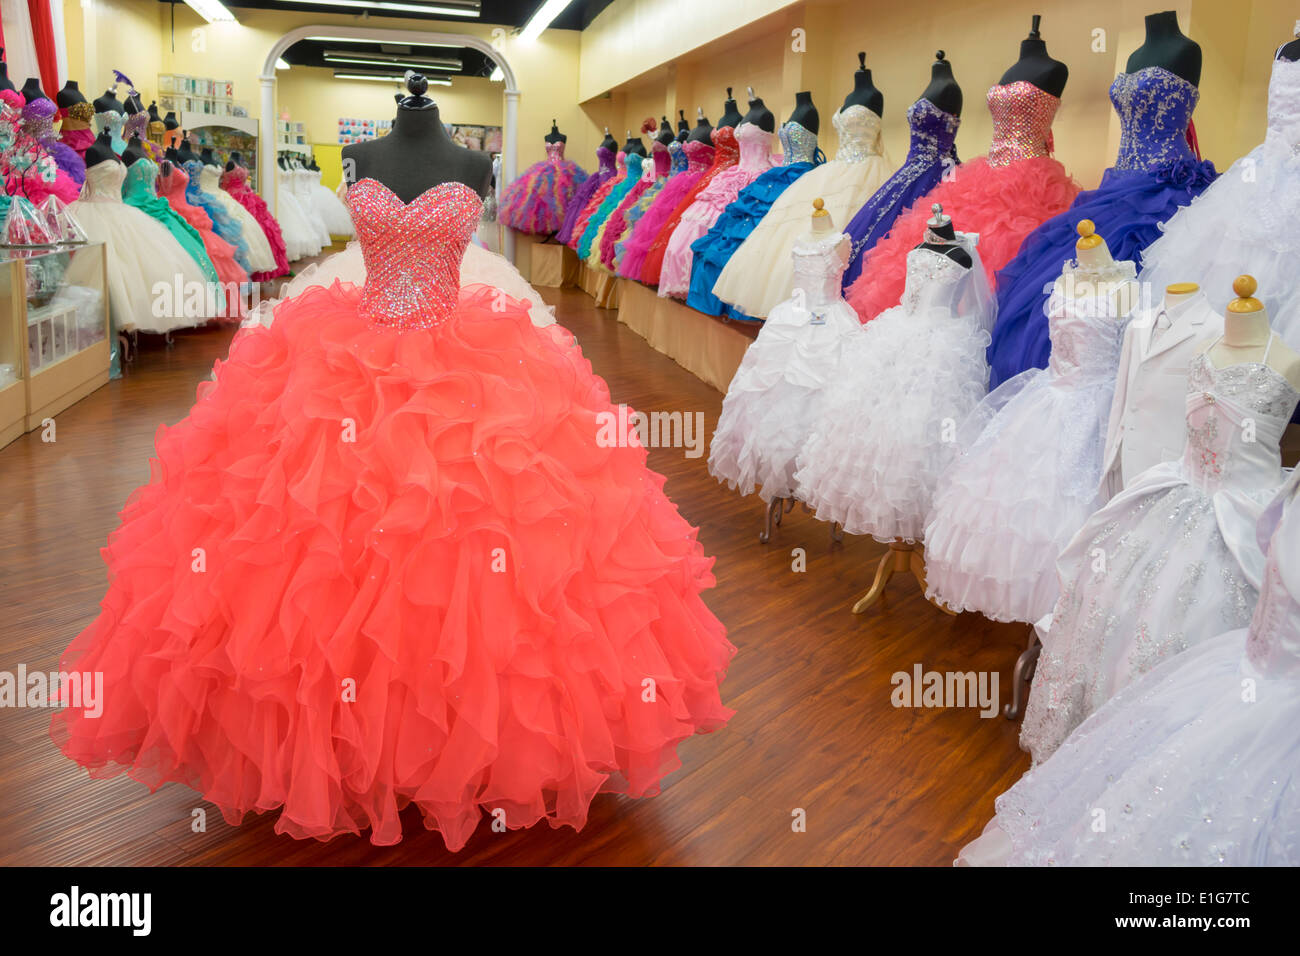 Ball Gown Stockfotos & Ball Gown Bilder - Alamy